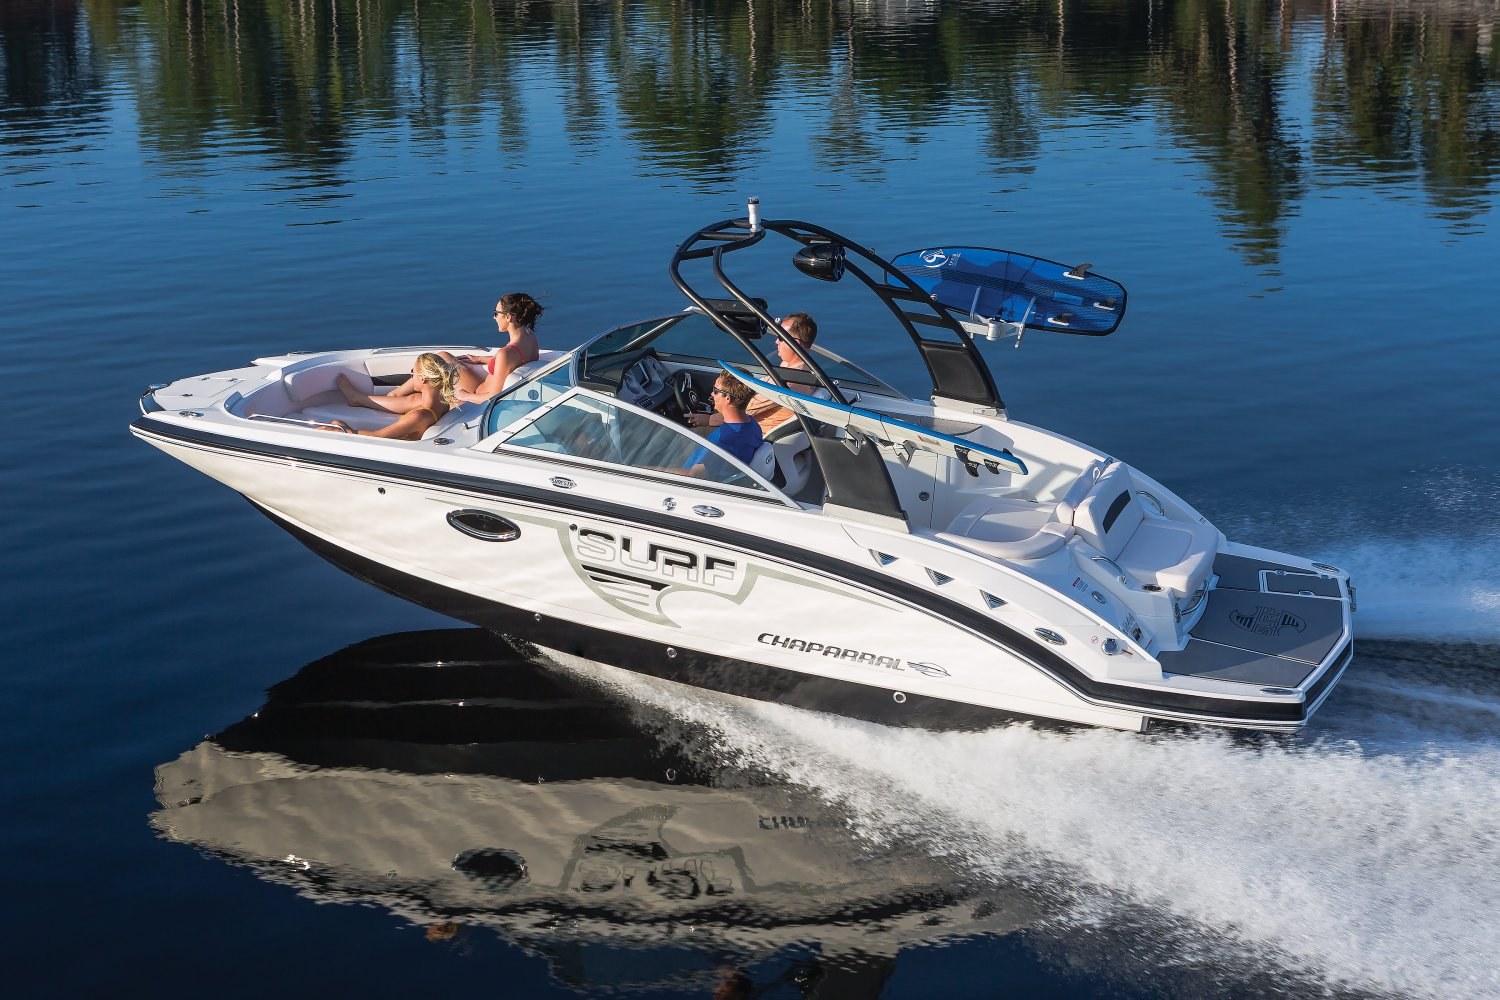 Image of a Solid Blue Hull 2018 244 Sunesta  Chaparral Boats. Our track record speaks for itself. Seeing Chaparral on top when it comes to performance, styling, value and innovation should come as no surprise... we've won more than 30 awards for product excellence, a feat few can claim.